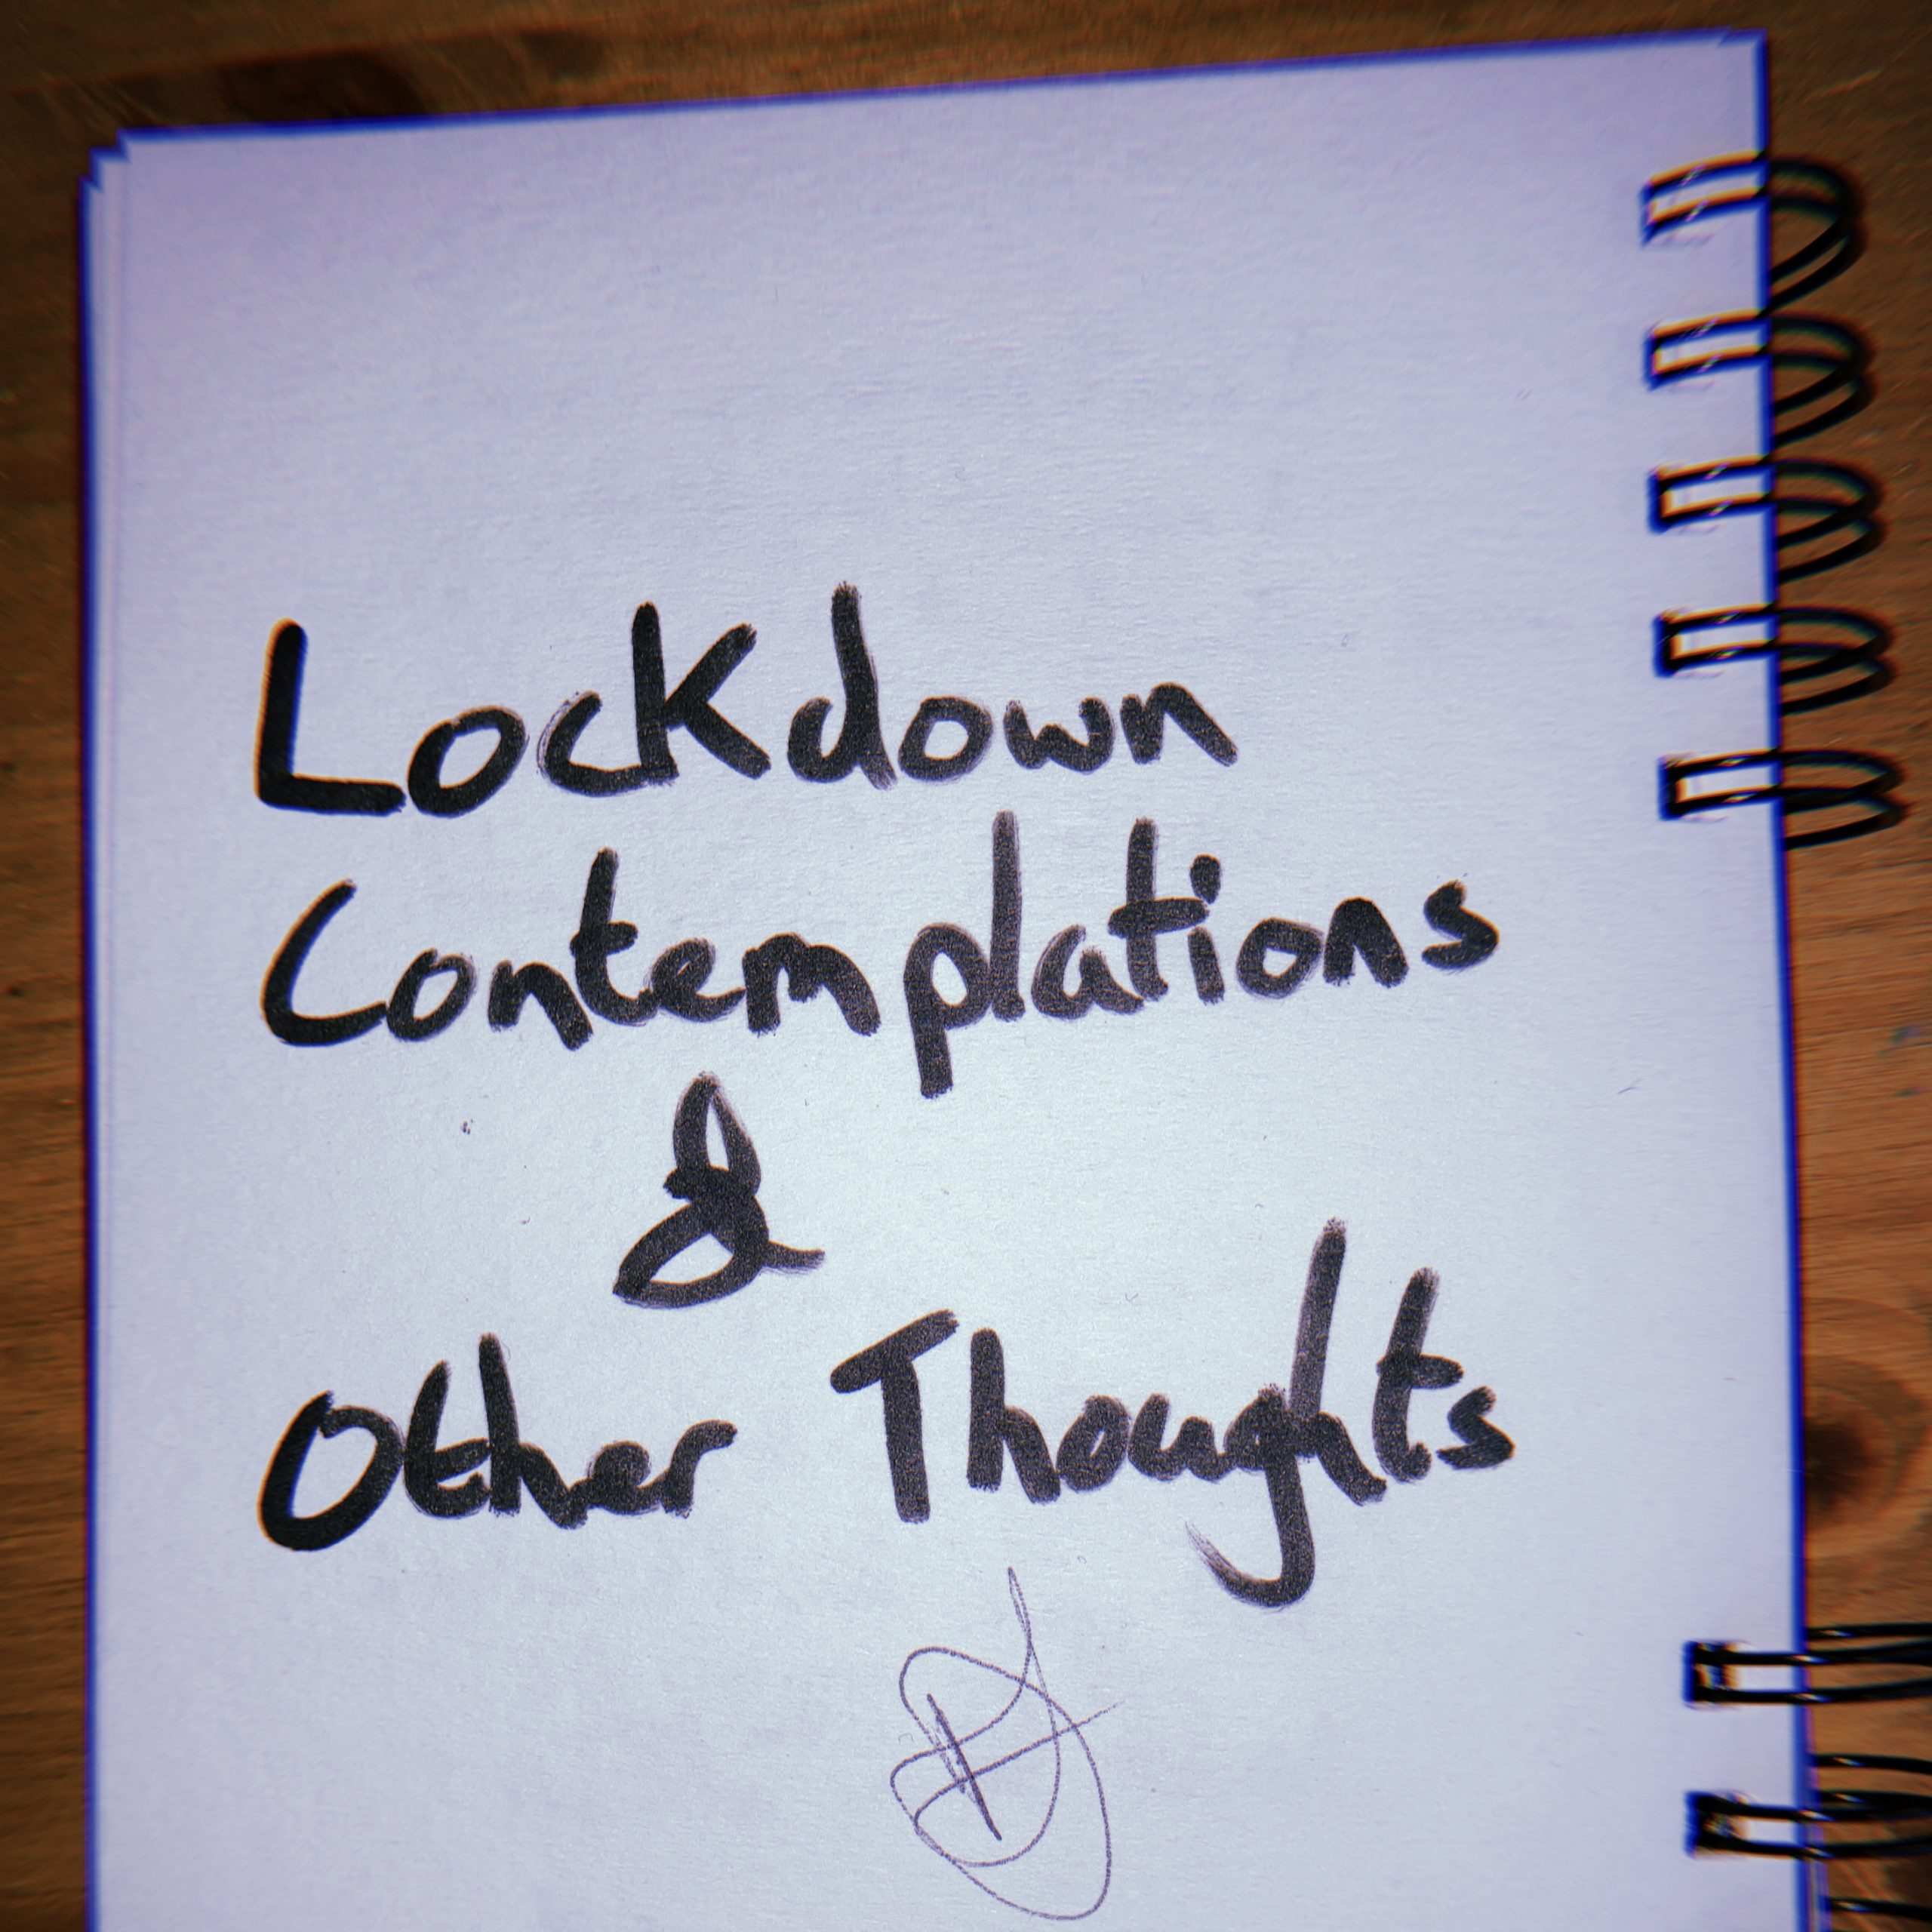 Lockdown Contemplations & Other Thoughts pt. 1